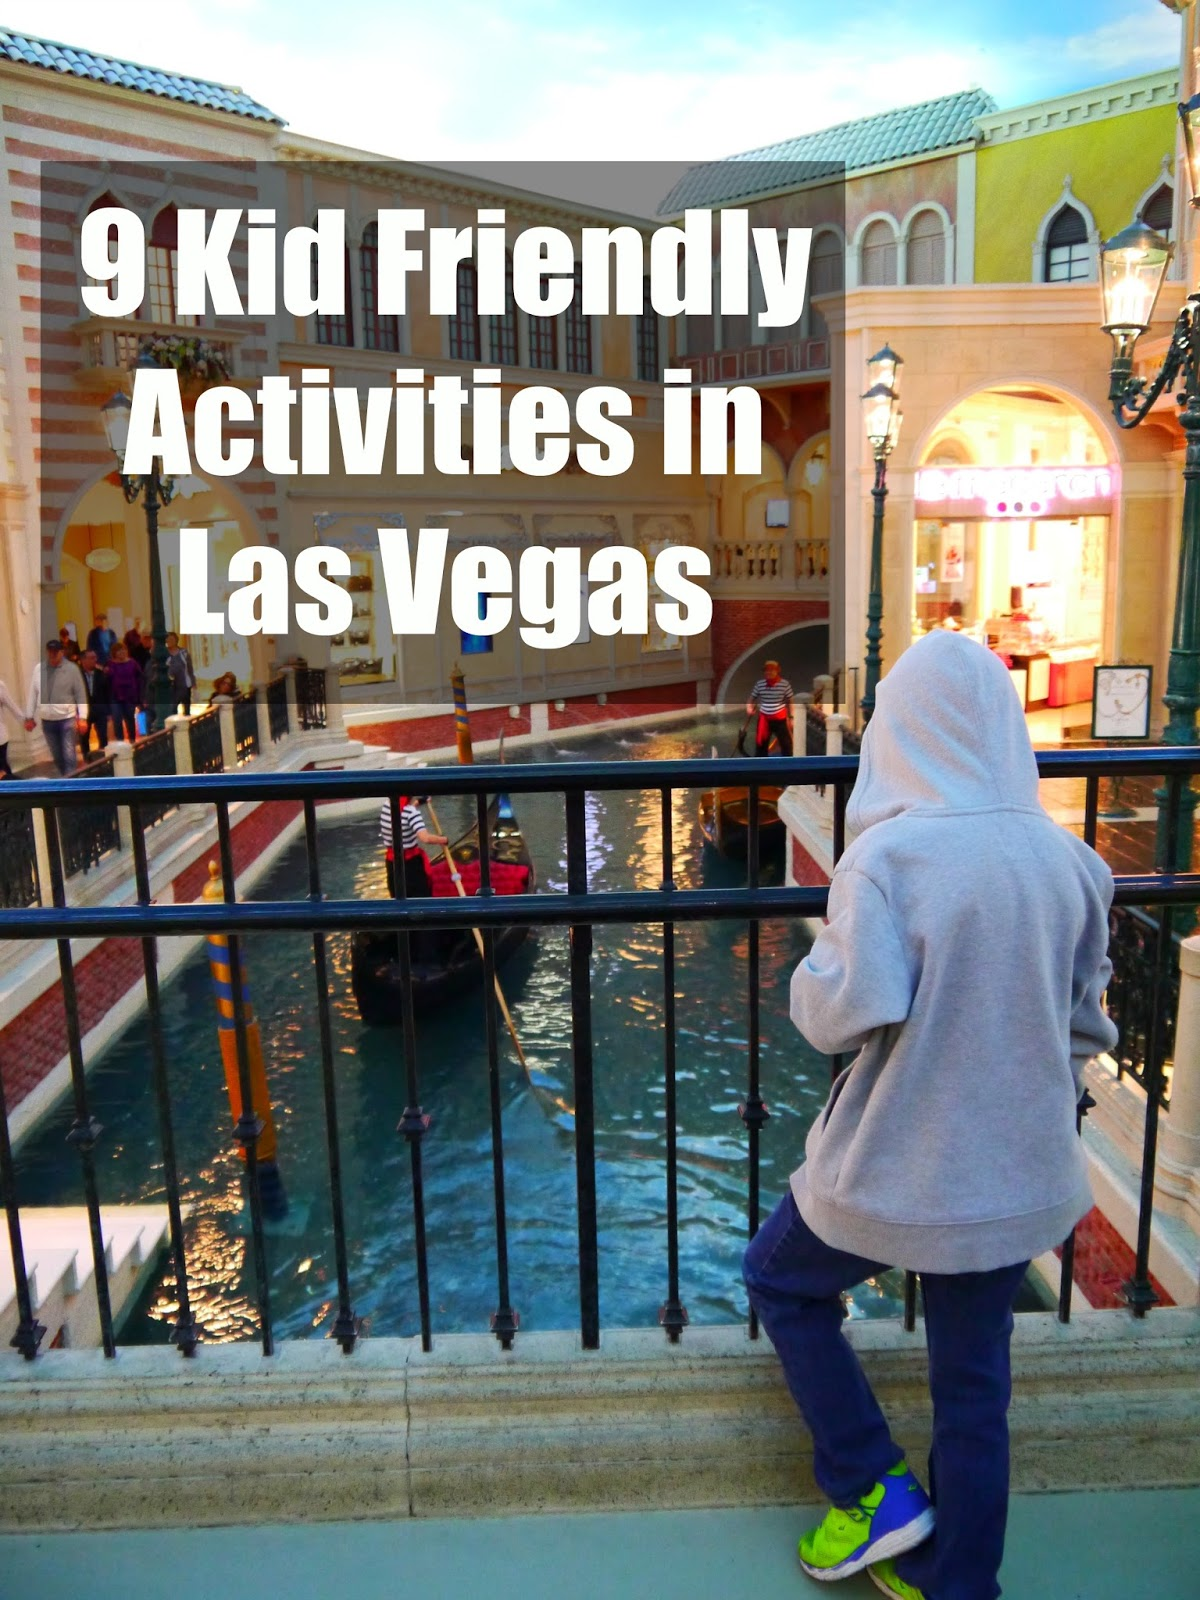 Las Vegas Family Activities: 9 Kid Friendly Activities In Las Vegas